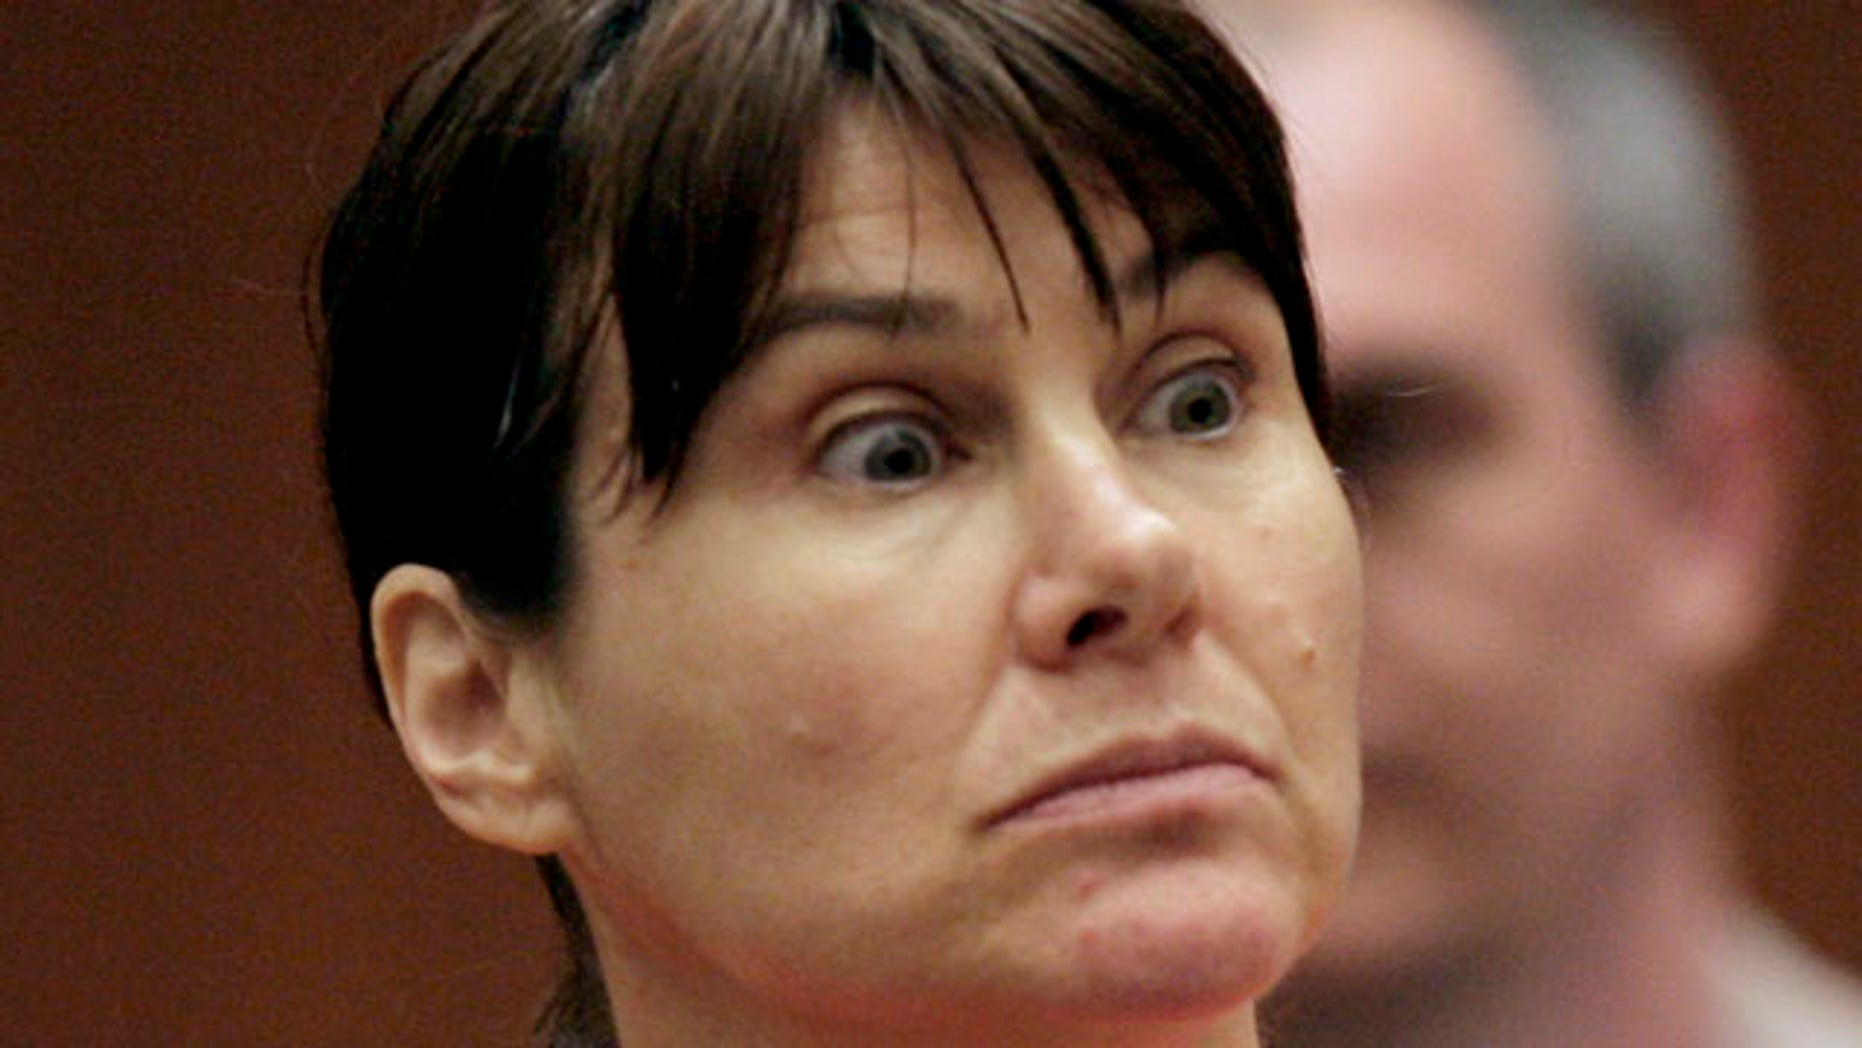 July 29, 2009: Former Los Angeles police officer Stephanie Lazarus appears in court in Los Angeles. Lazarus is accused of killing an ex-boyfriend's wife 23 years ago when she was a young officer.